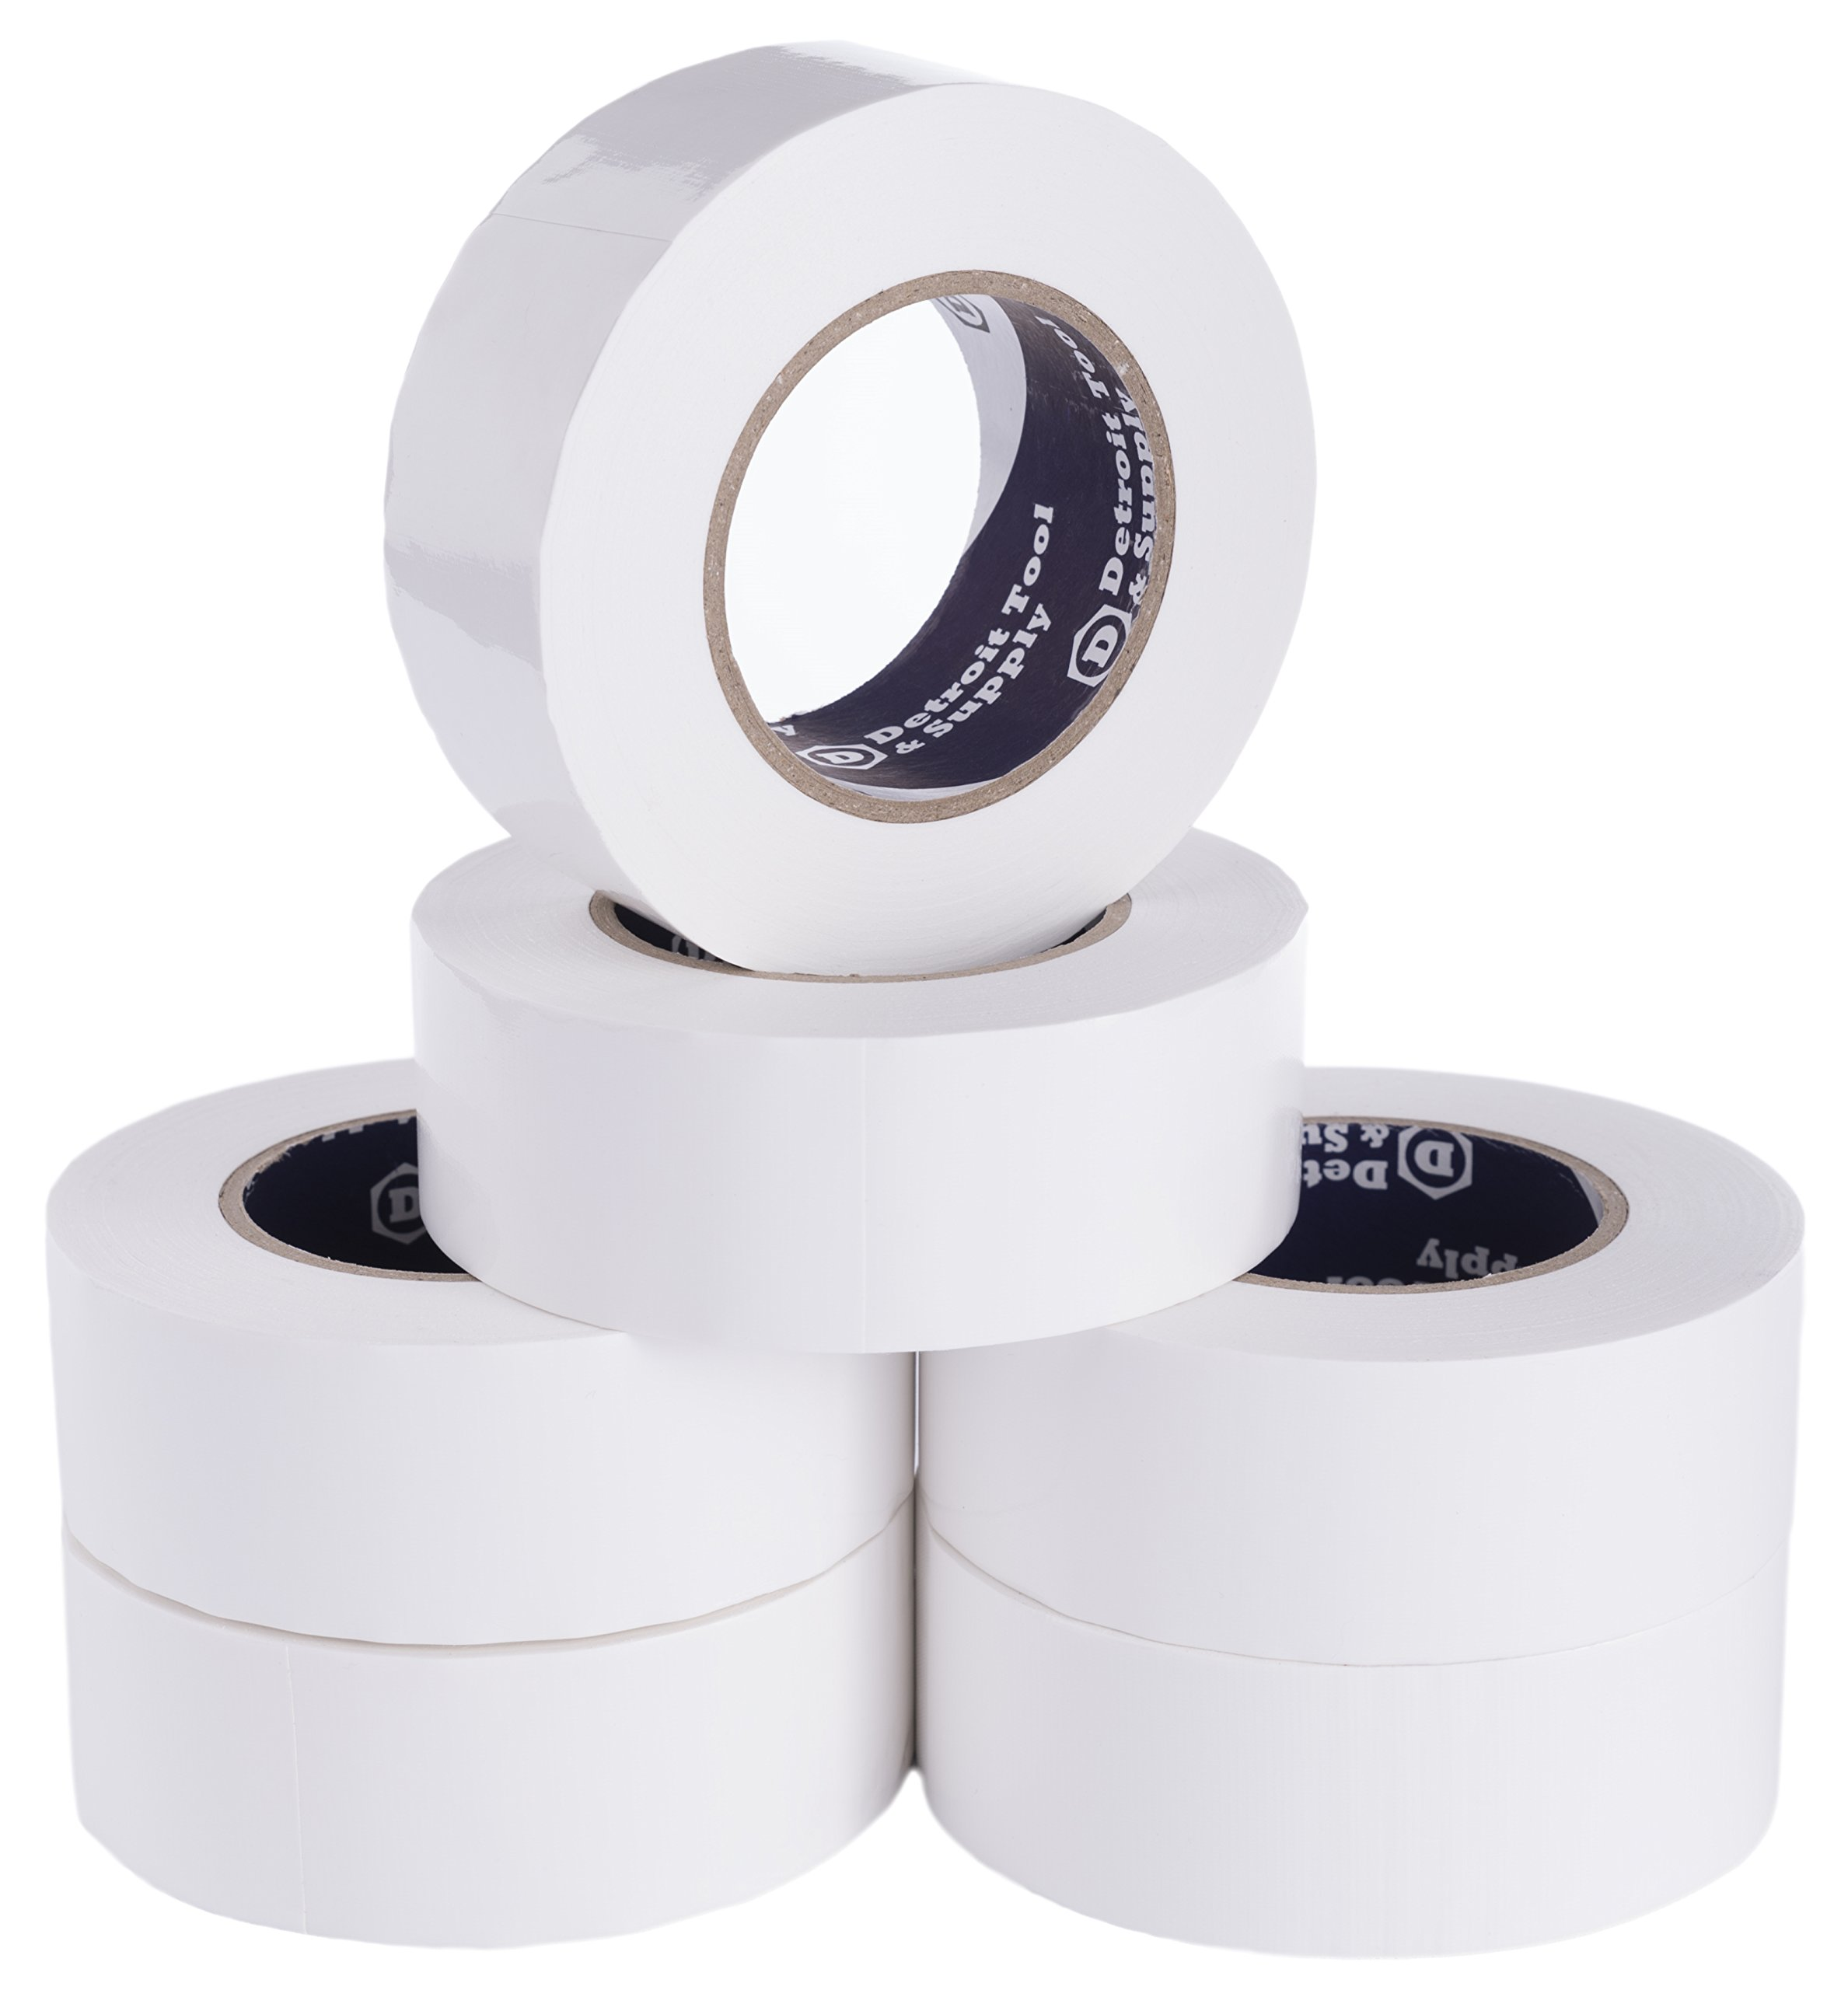 Detroit Tool and Supply 1.8-Inch Wide Duct Tape, White - 55 yard, 6 Rolls